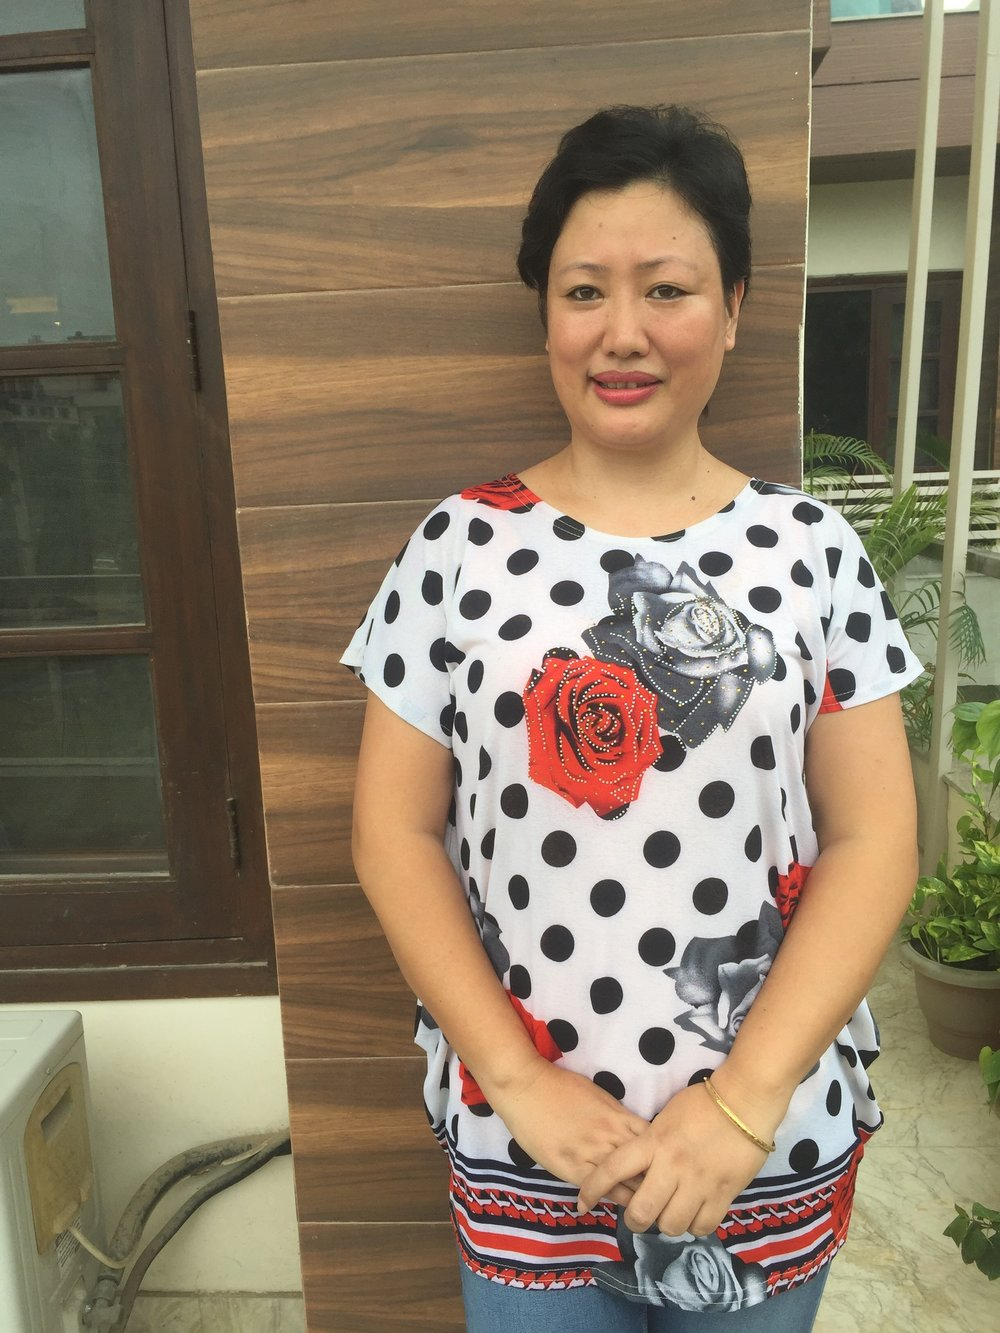 Chang: administrative assistant and event coordinator, alongside training in maternal health.